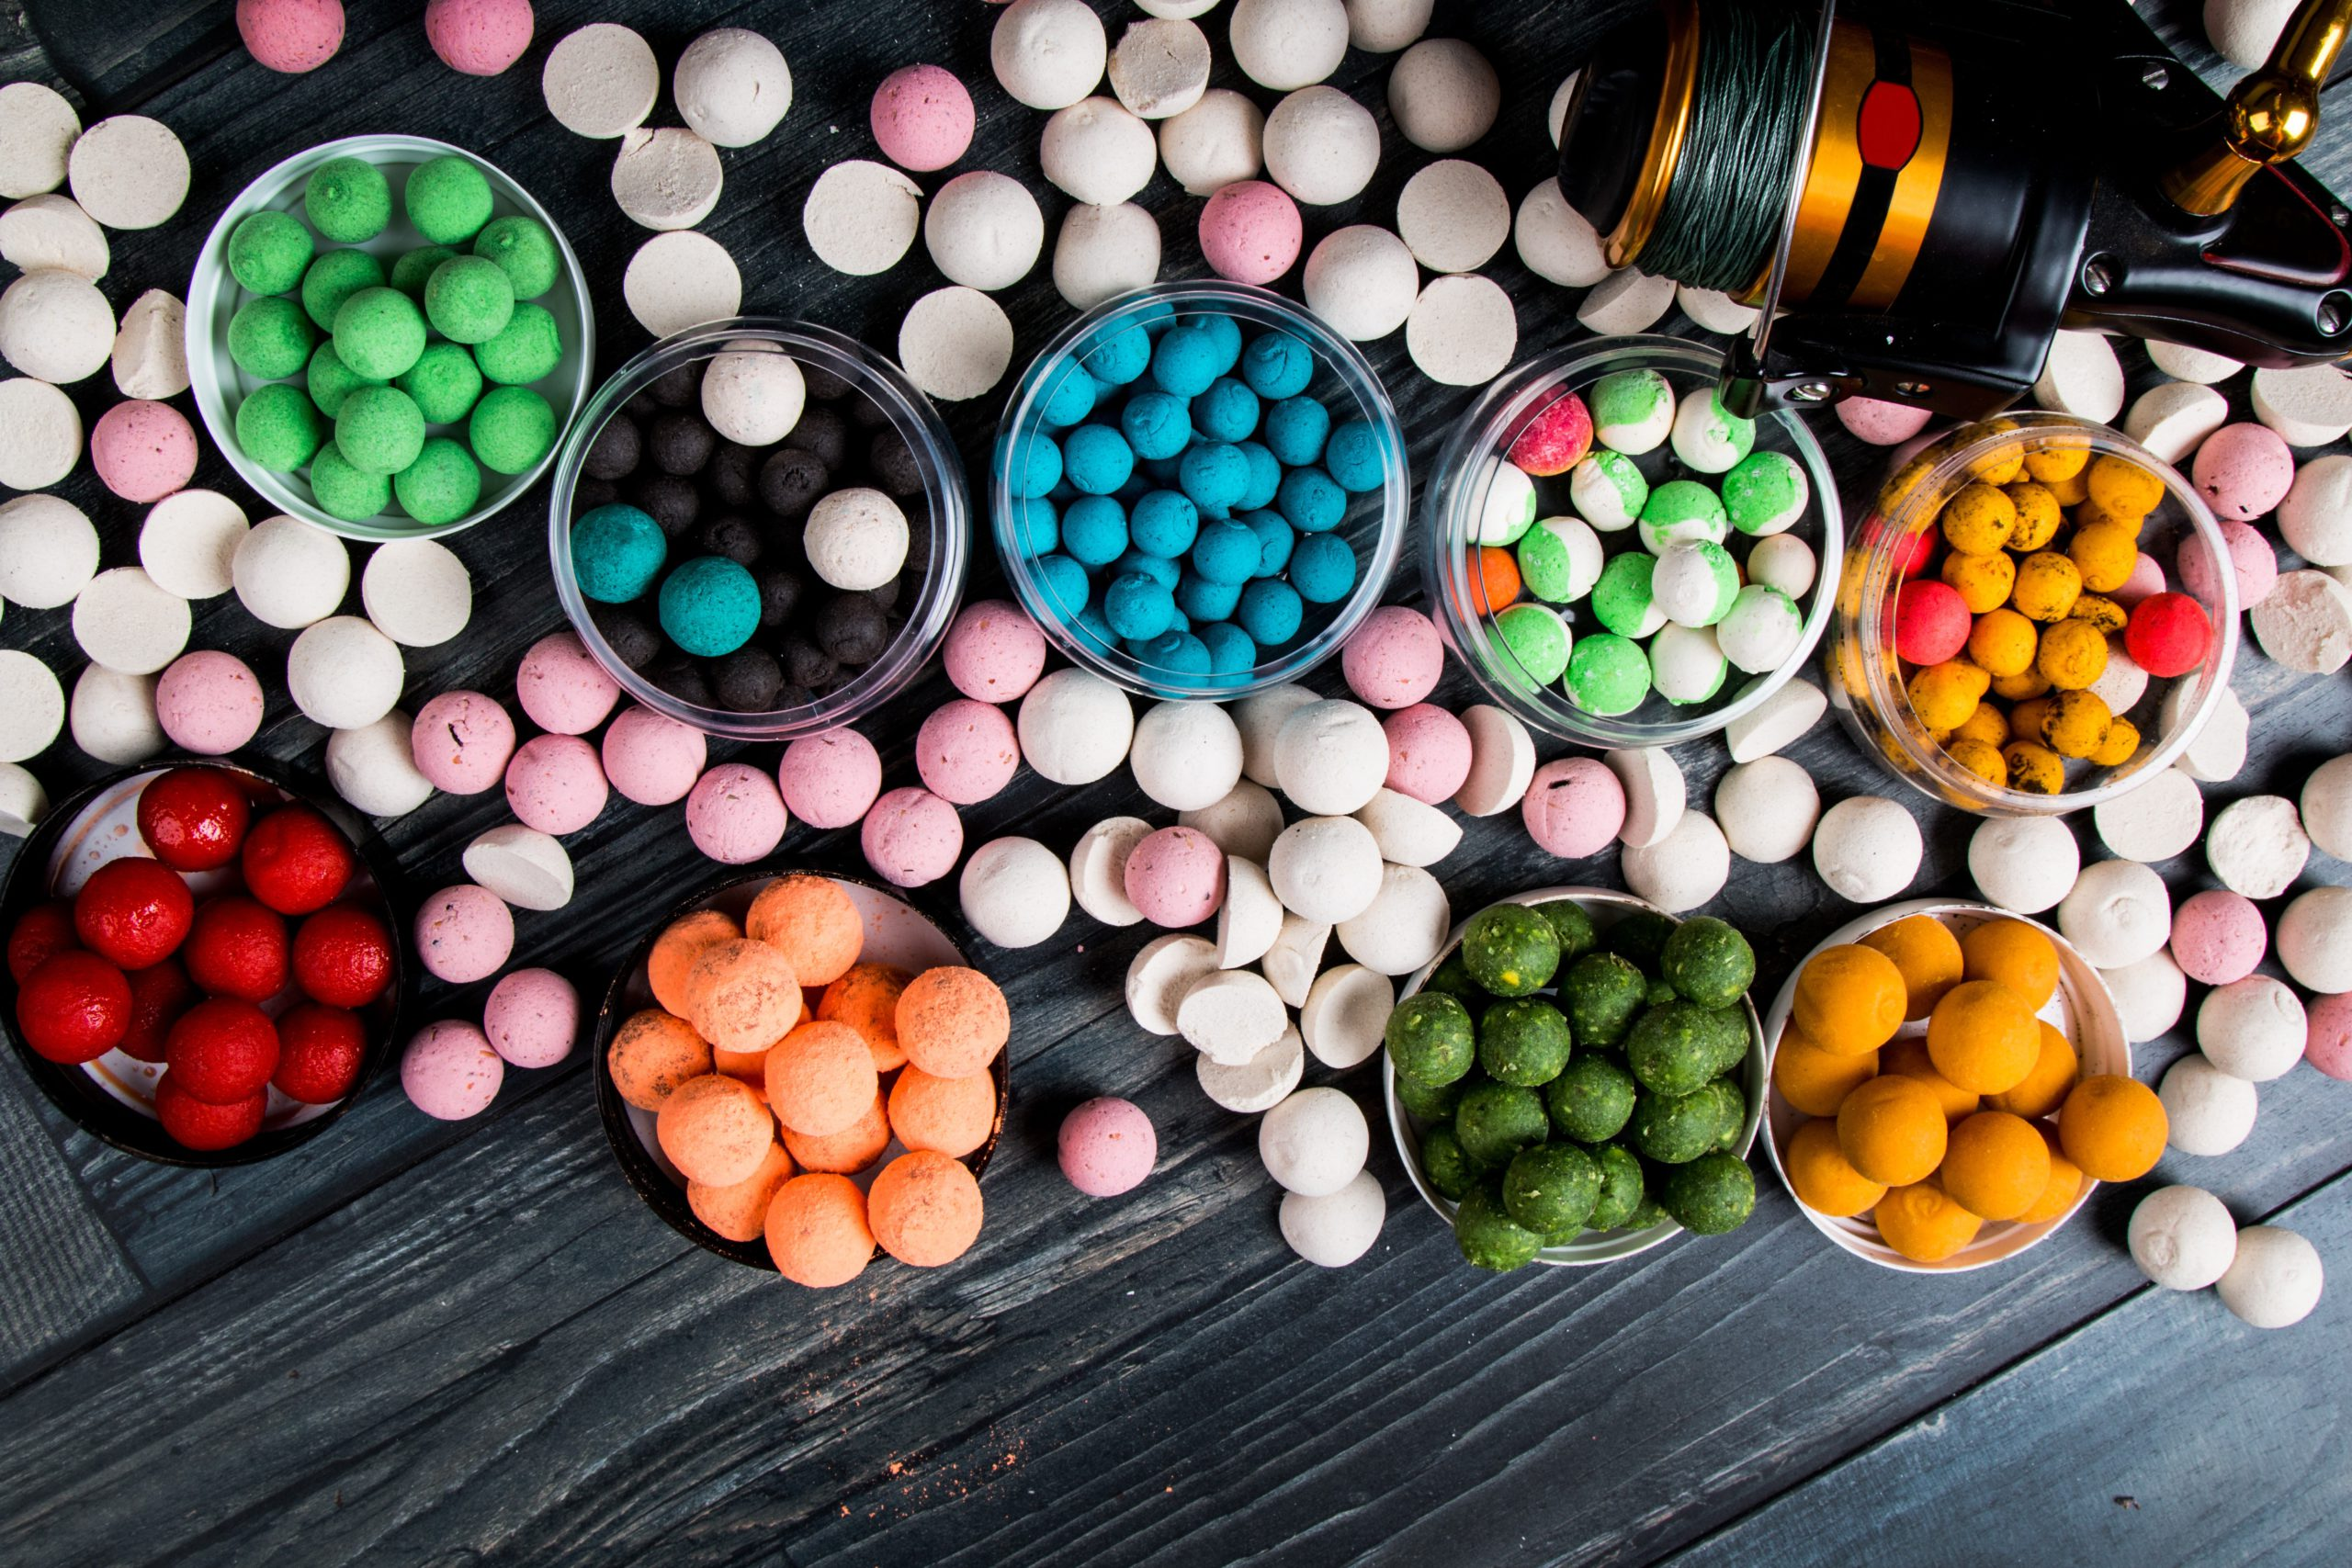 A lot of different colored carp boilies on a wooden table.